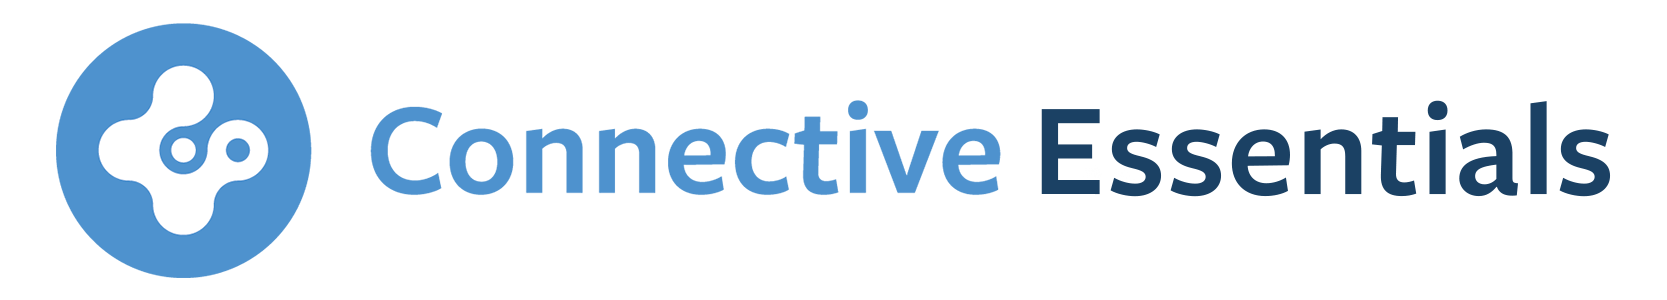 Connective Essentials logo